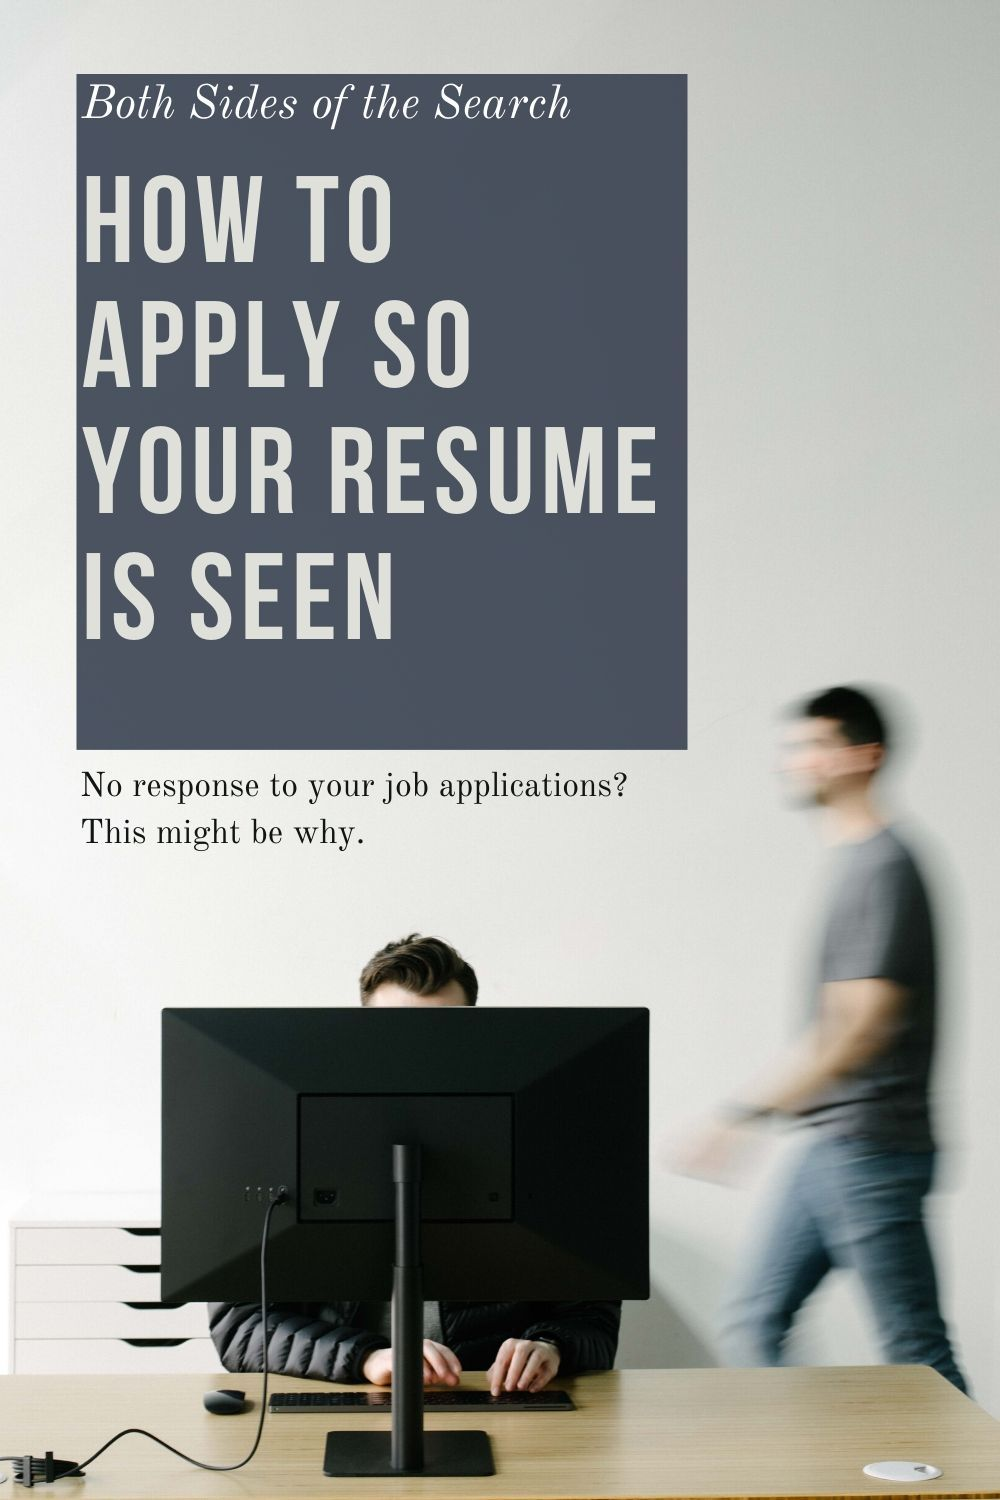 Advice from a recruiter 6 hacks to passing a resume scan